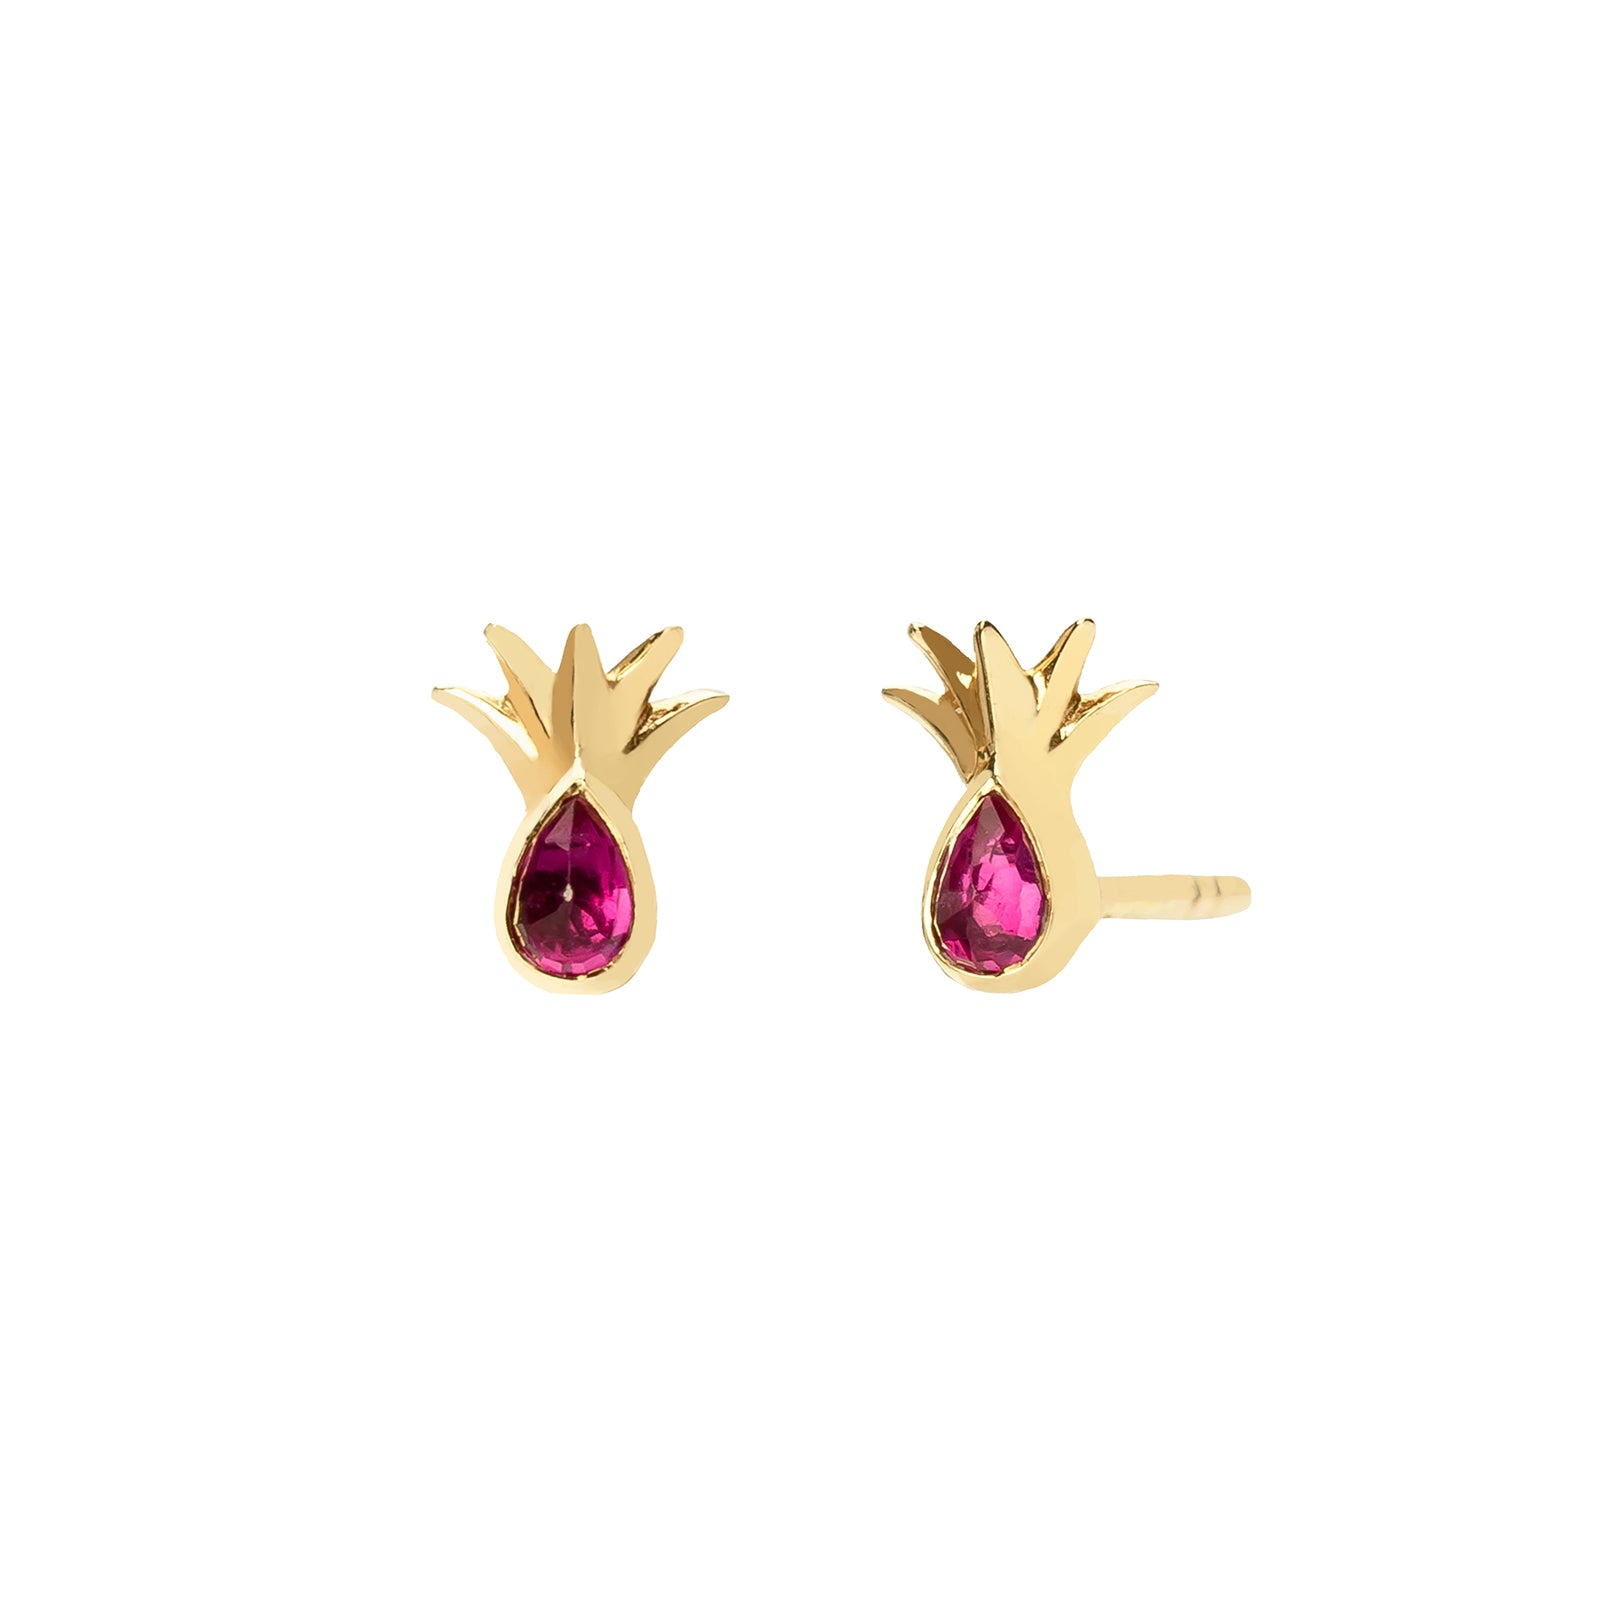 Celine Daoust Pineapple Leaf Earrings - Ruby - Earrings - Broken English Jewelry